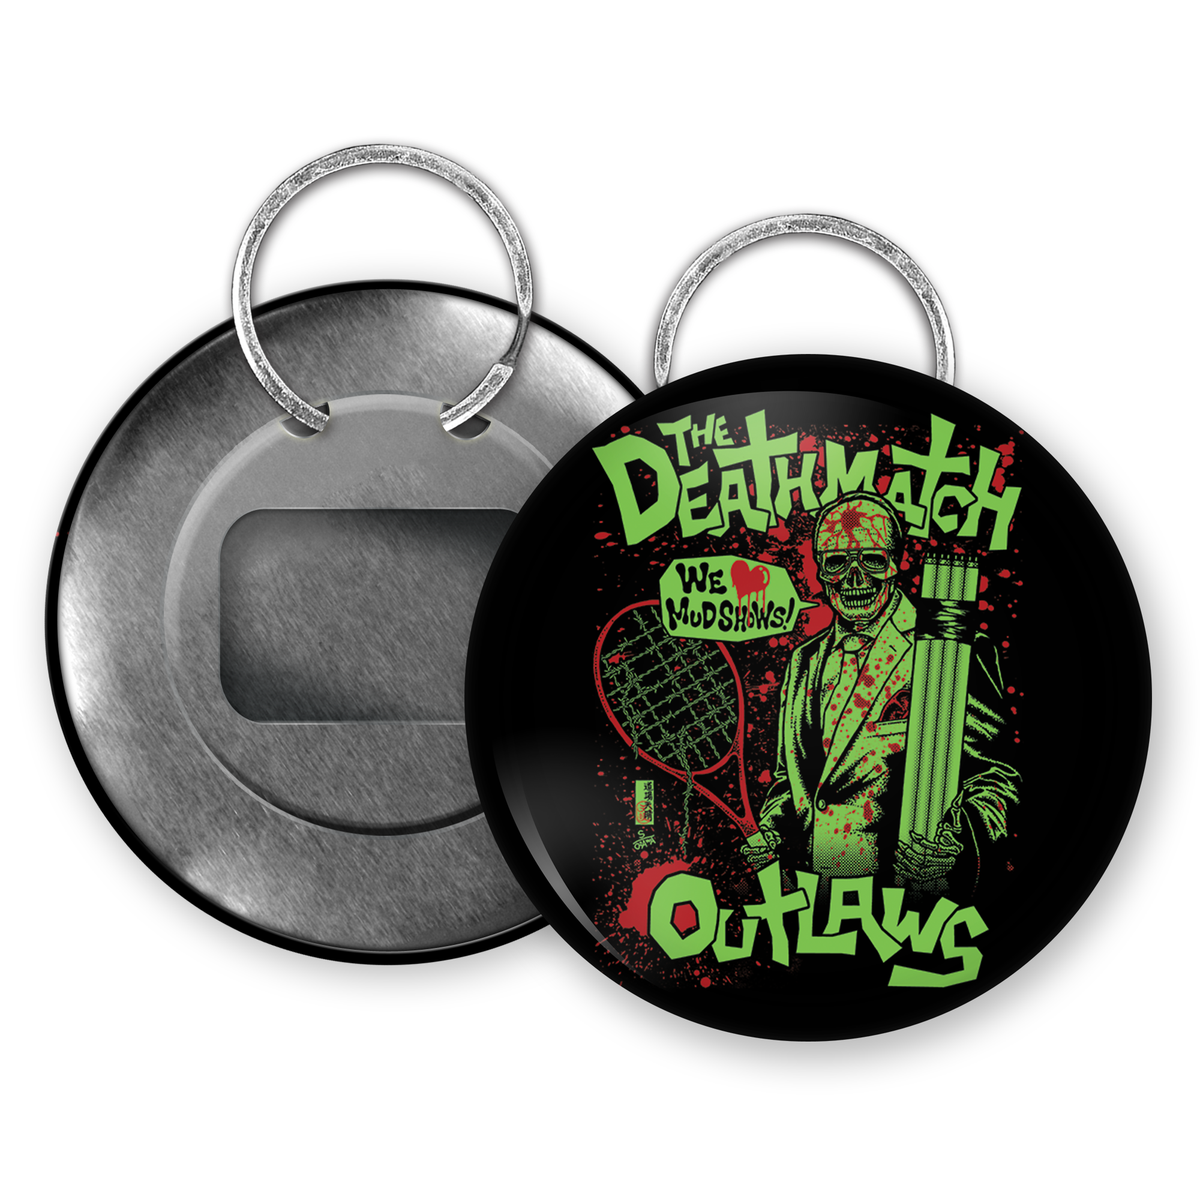 Image of Deathmatch Outlaws Bottle Opener